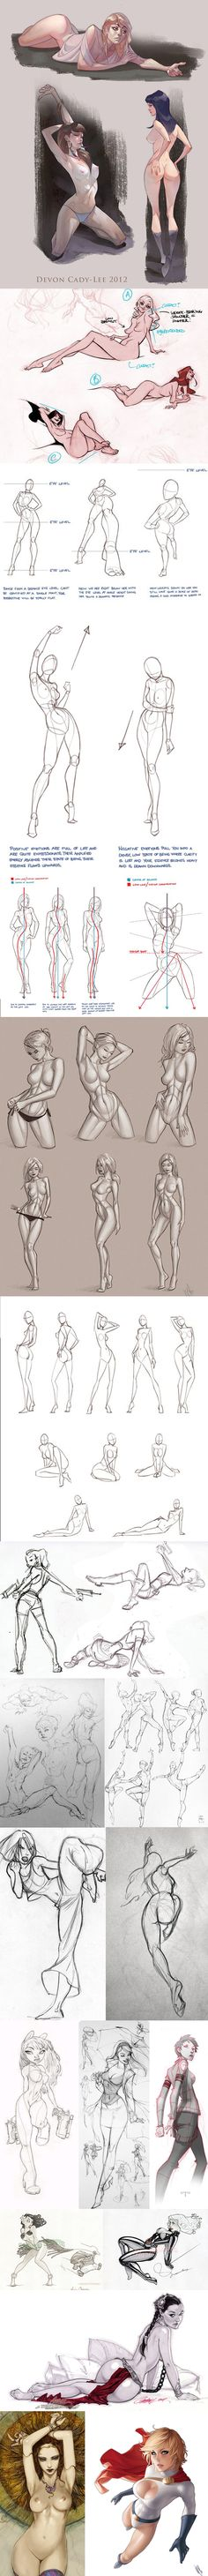 great pose info - female Body study - anatomical reference - woman in different positions - drawing reference Drawing Poses, Drawing Tips, Drawing Reference, Drawing Sketches, Art Drawings, Sketching, Anatomy Reference, Body Drawing, Anatomy Drawing